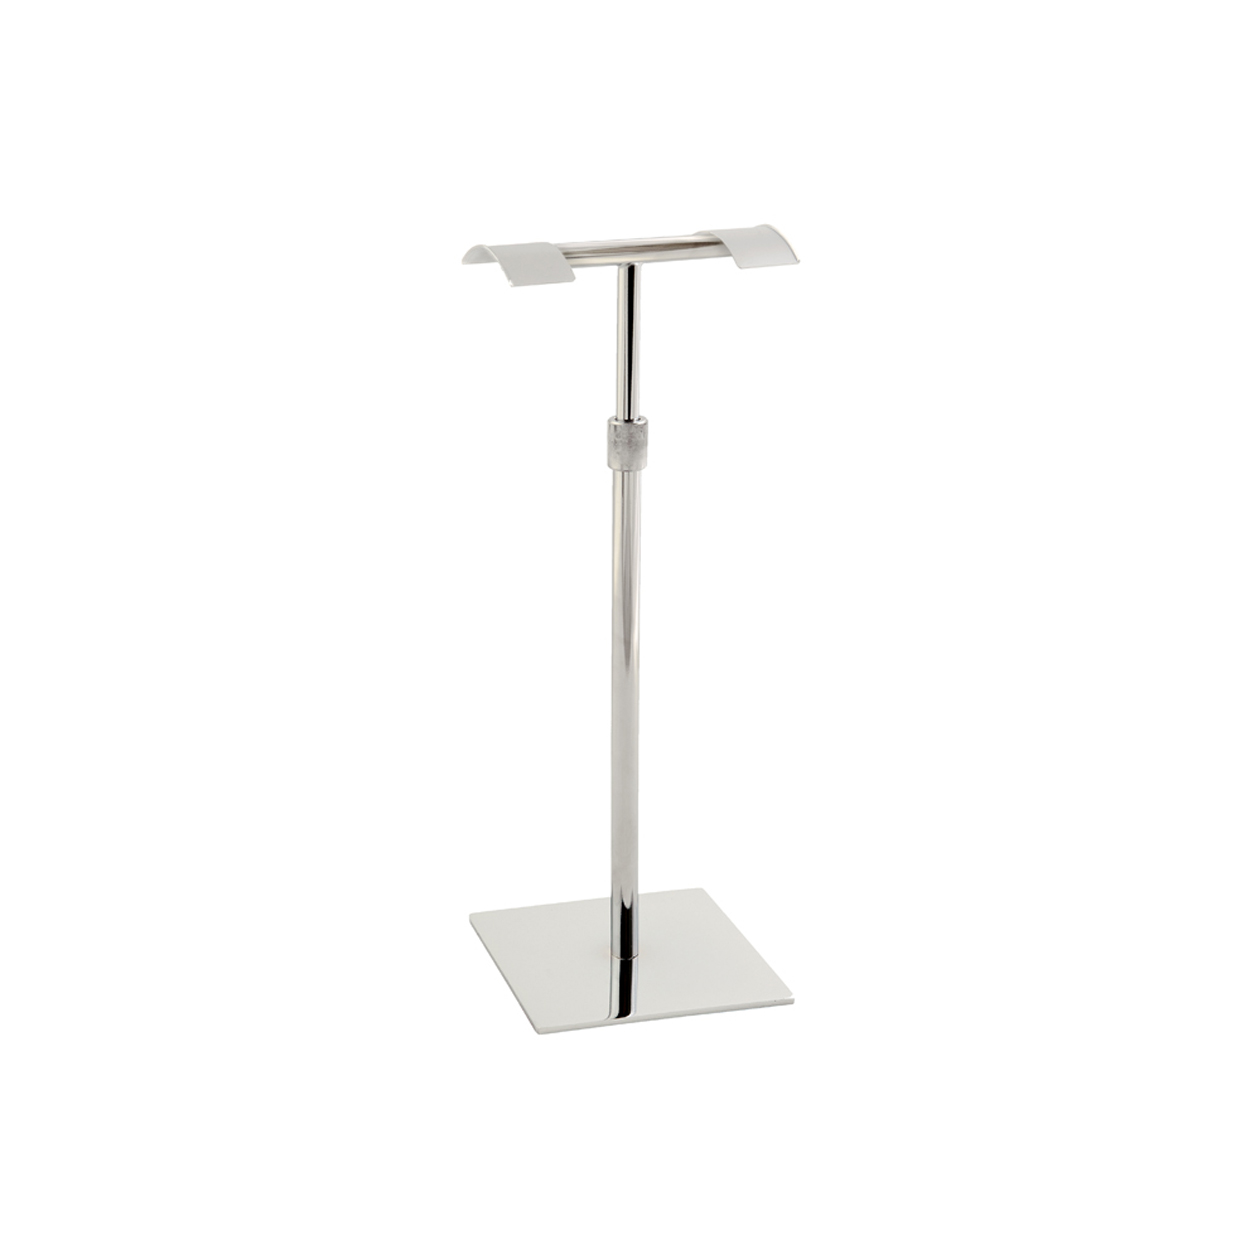 Premium Handbag Double side Display Stand - Dimensions 150mm square base and 326-610mm Adjustable Height.